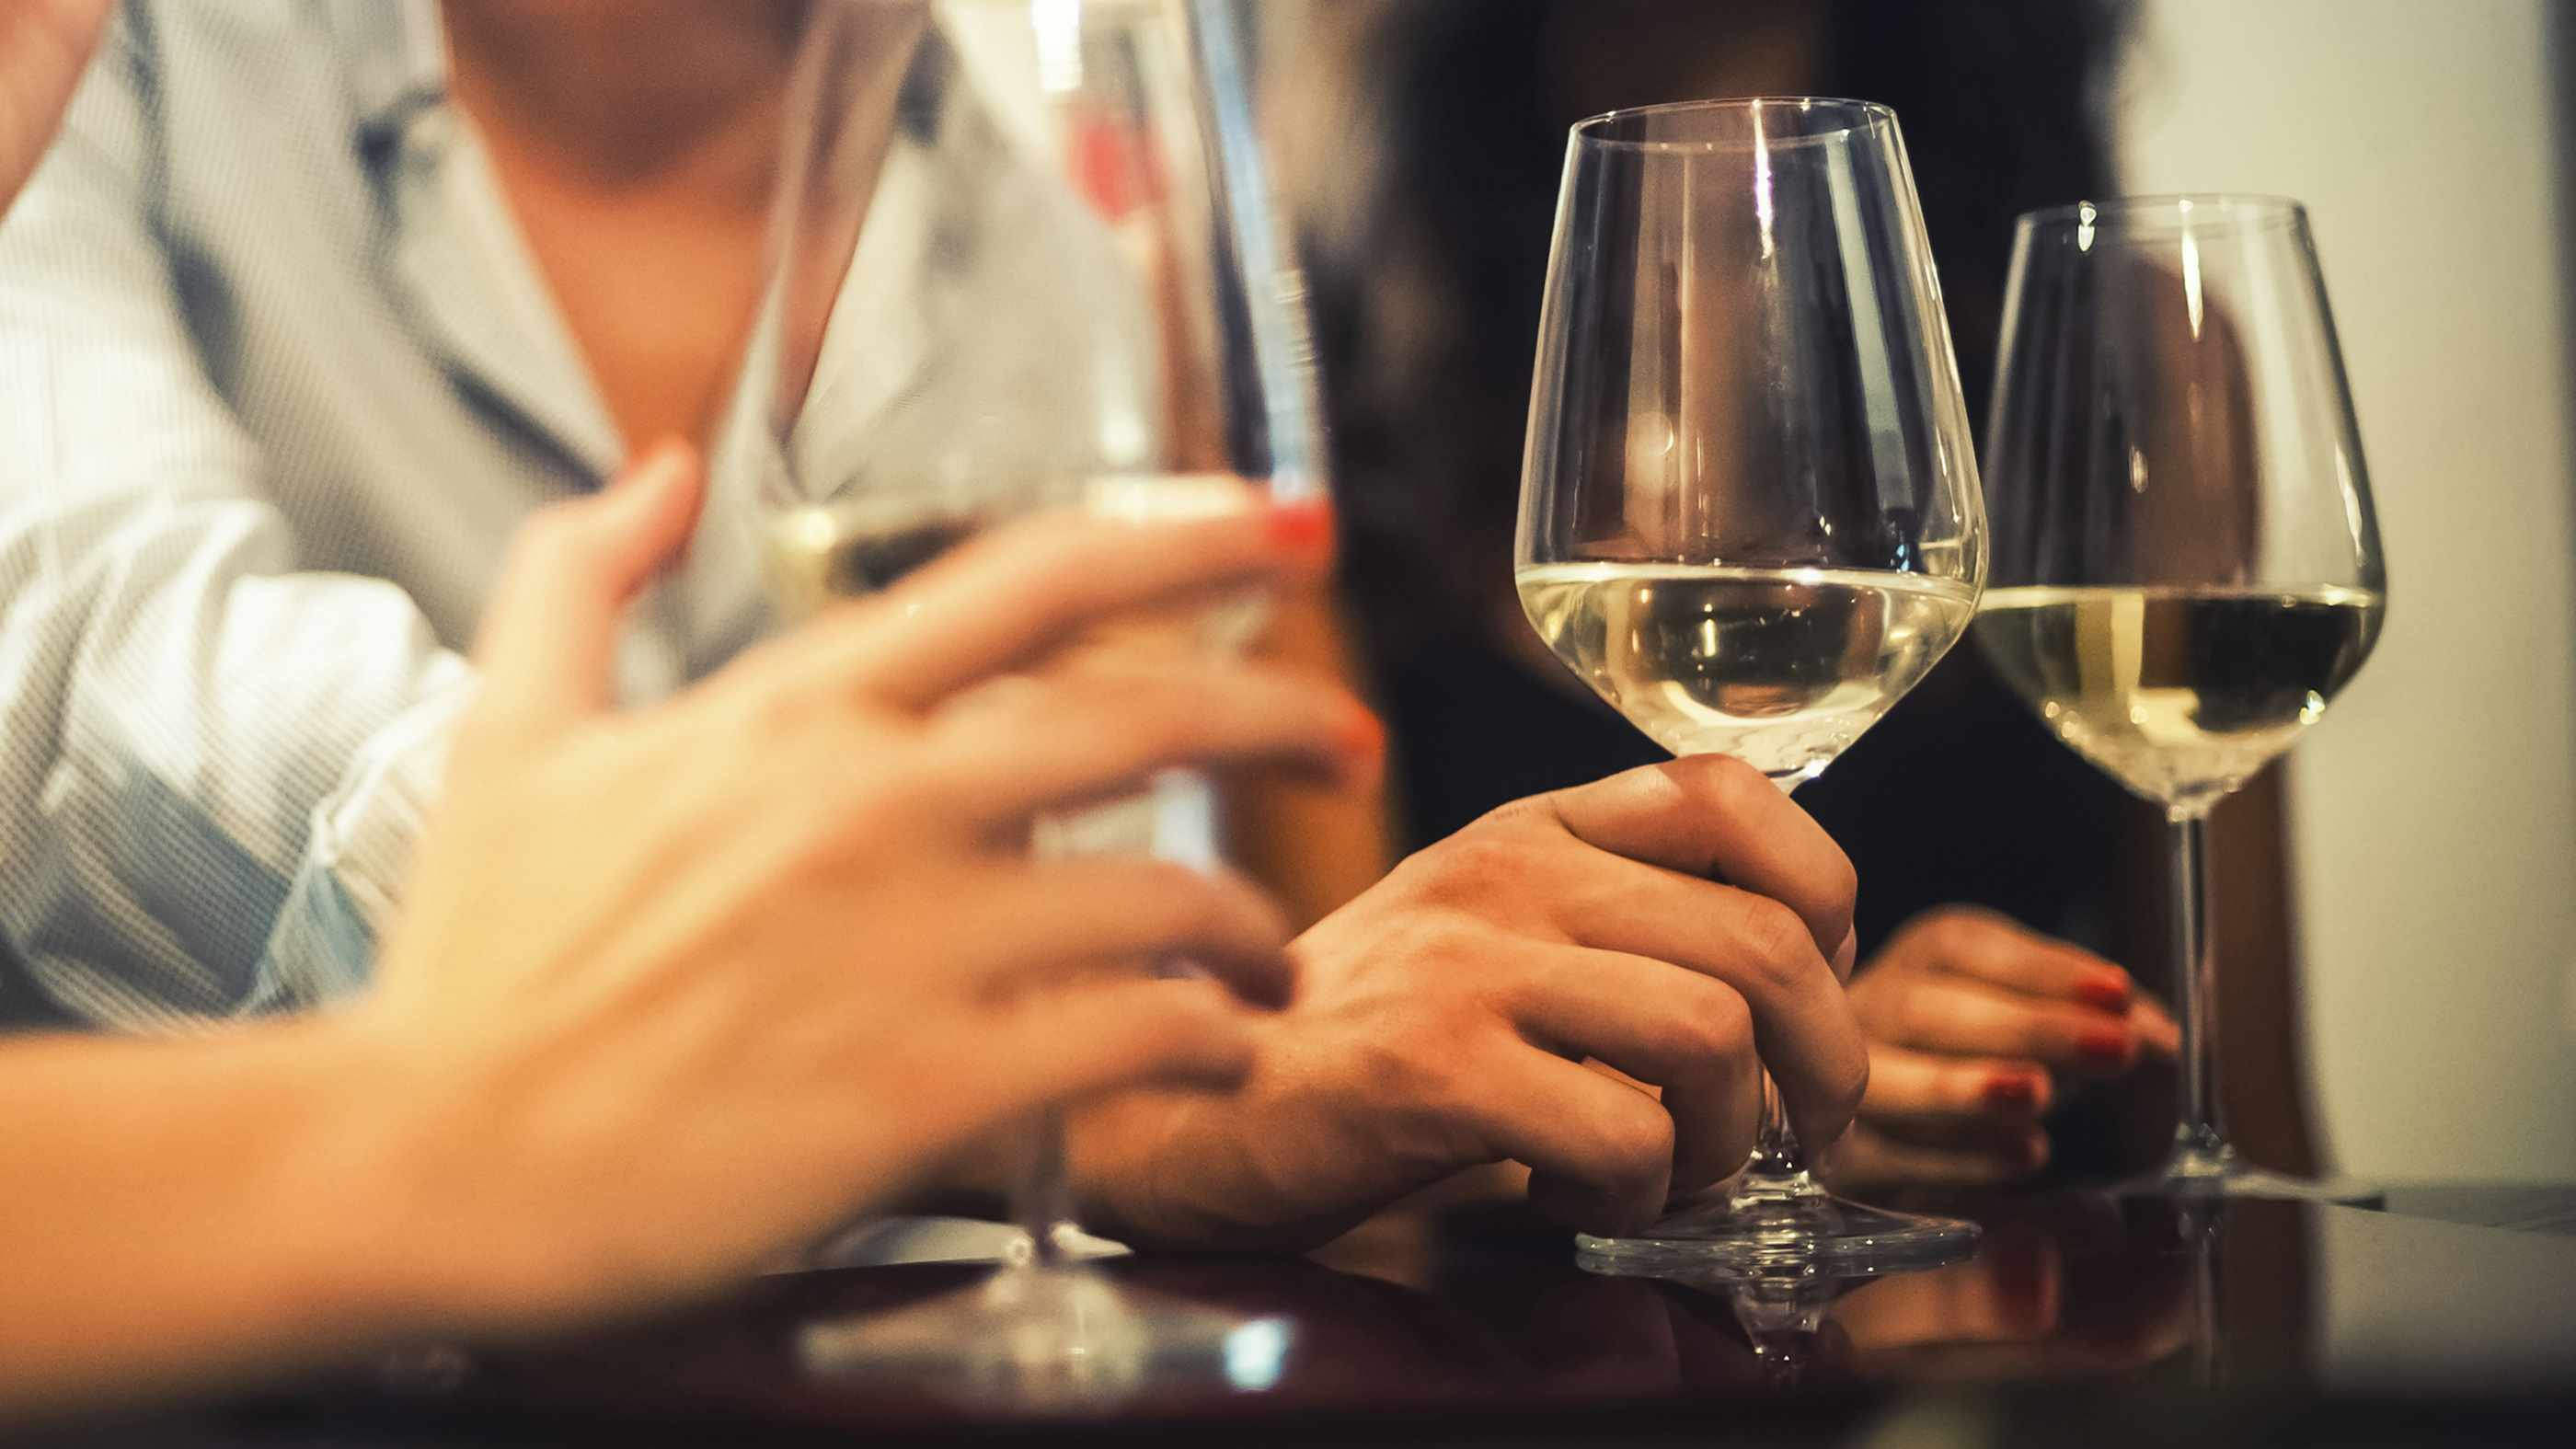 several people at a table or bar holding glasses of wine to drink